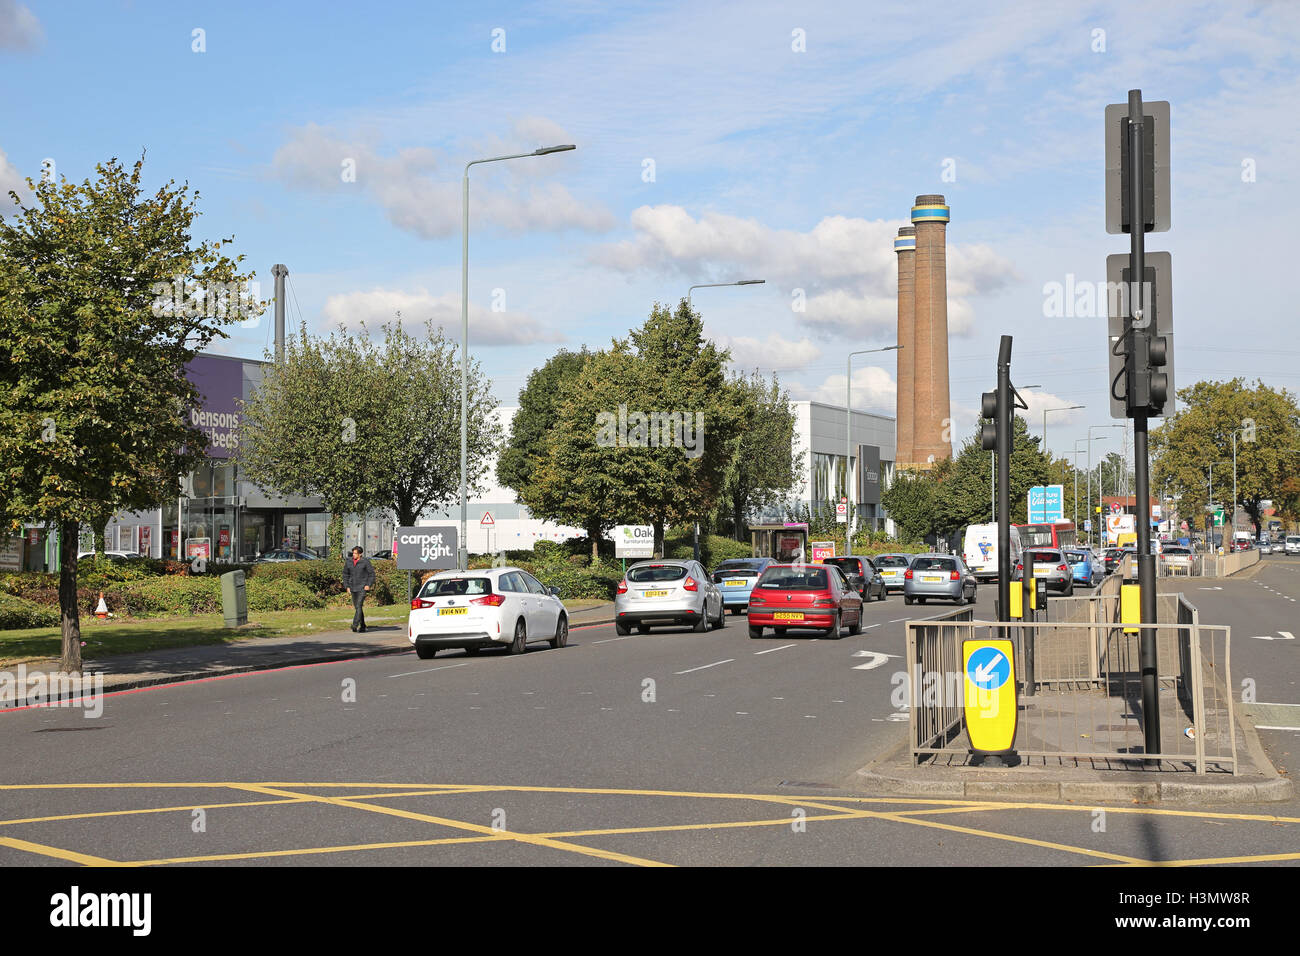 the purley way dual carriageway in croydon uk a major. Black Bedroom Furniture Sets. Home Design Ideas